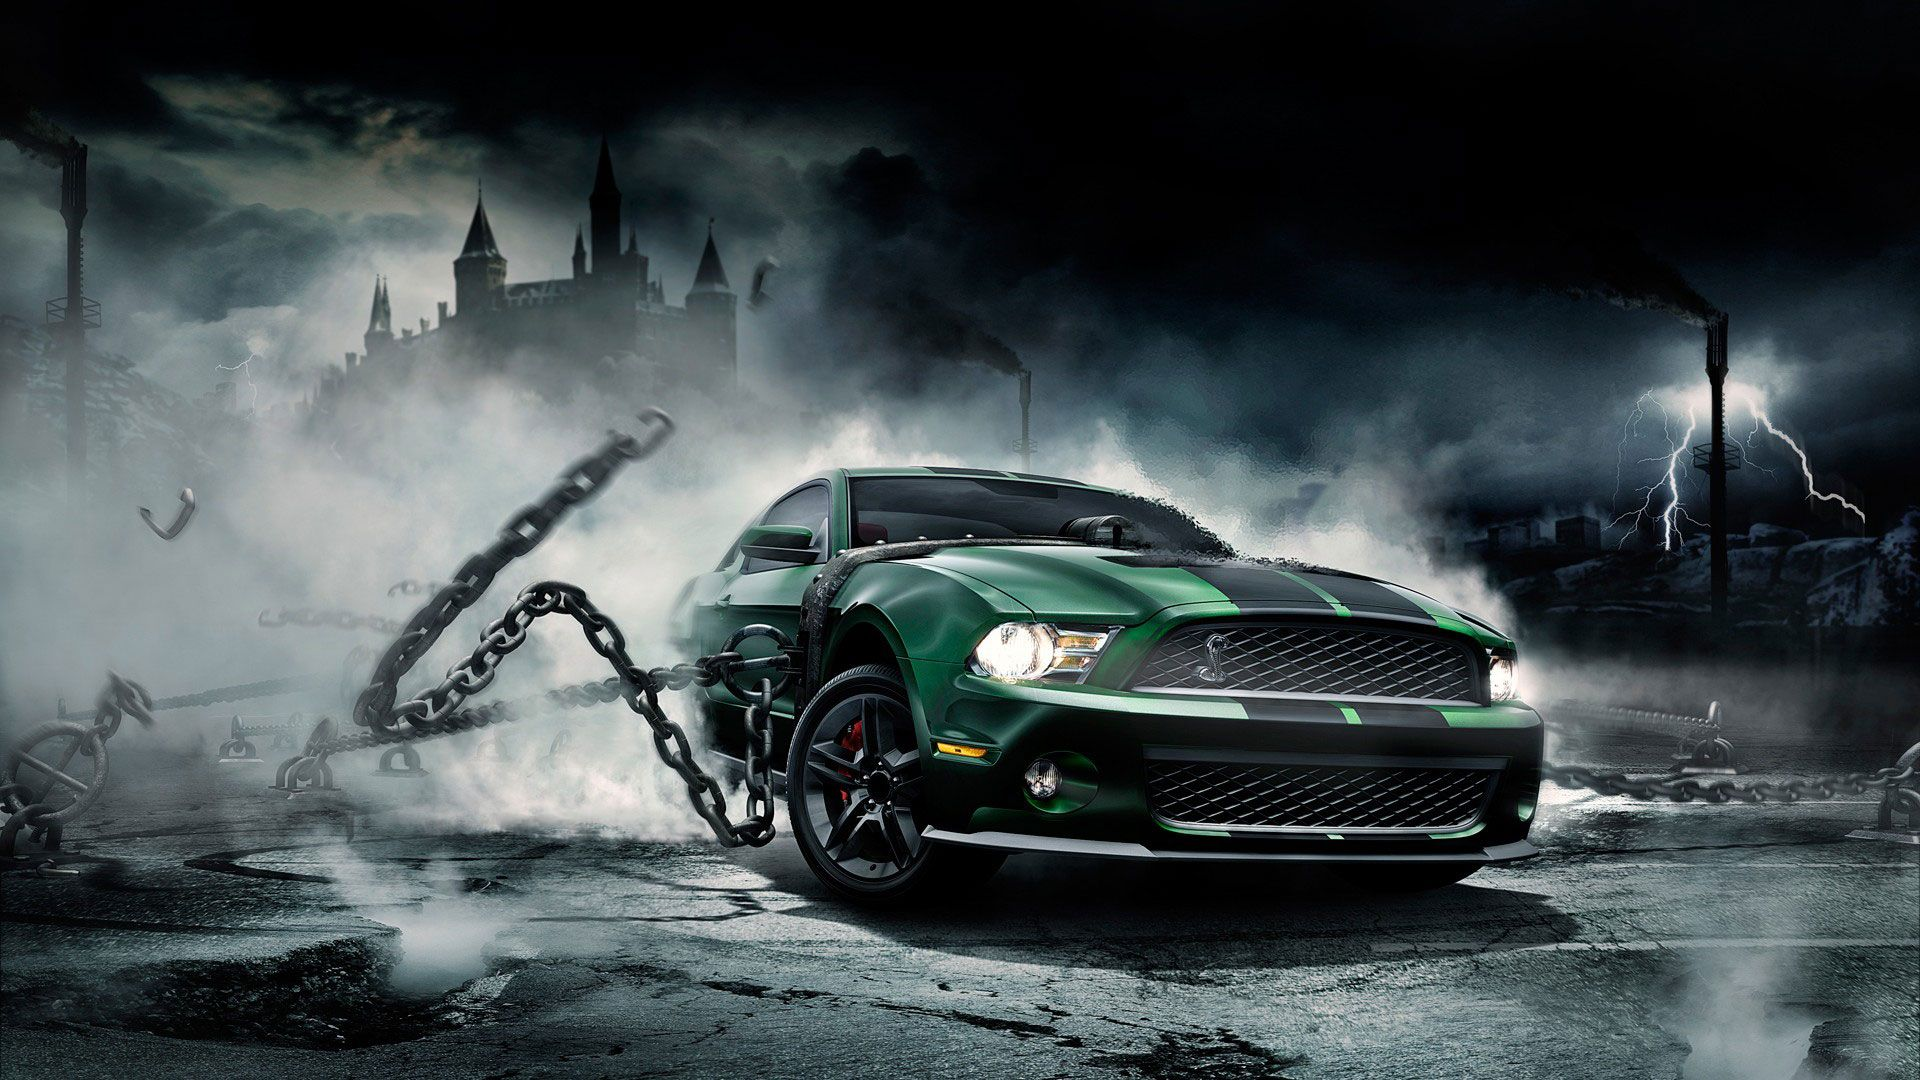 Cool Ford Mustang Shelby Gt500 Supersnake Hd Wallpaper Fondos De